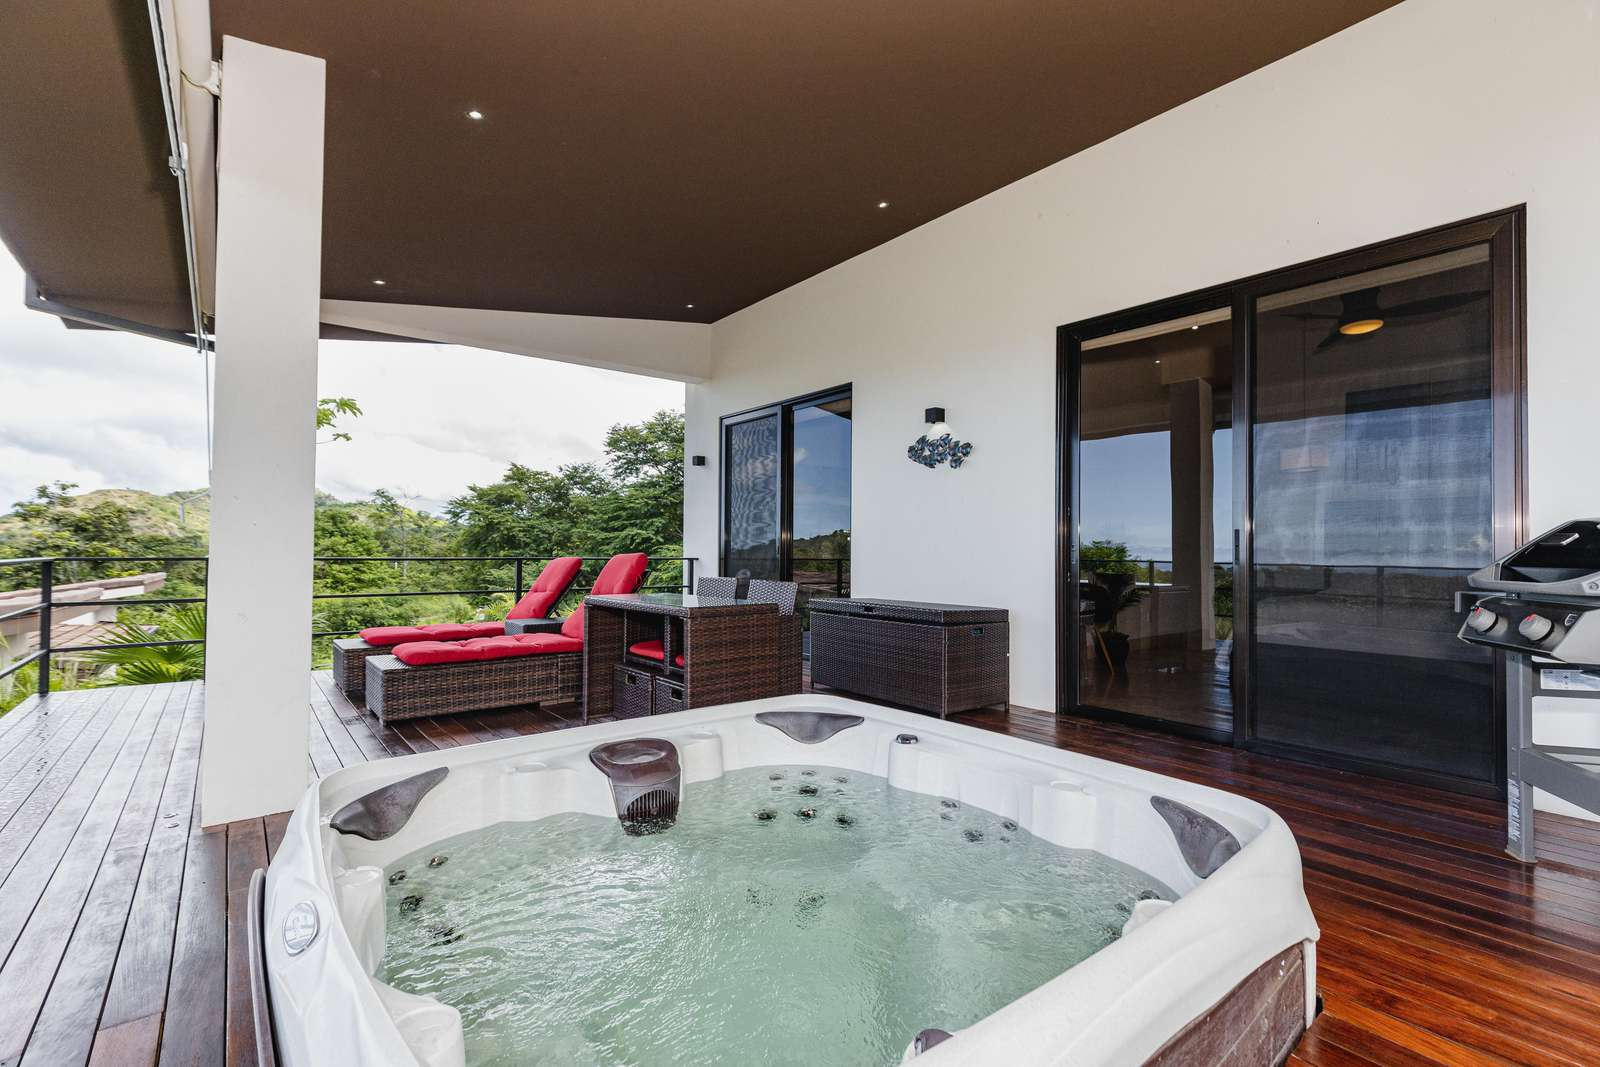 Private covered deck, jacuzzi, loungers and dining area with Weber BBQ grill